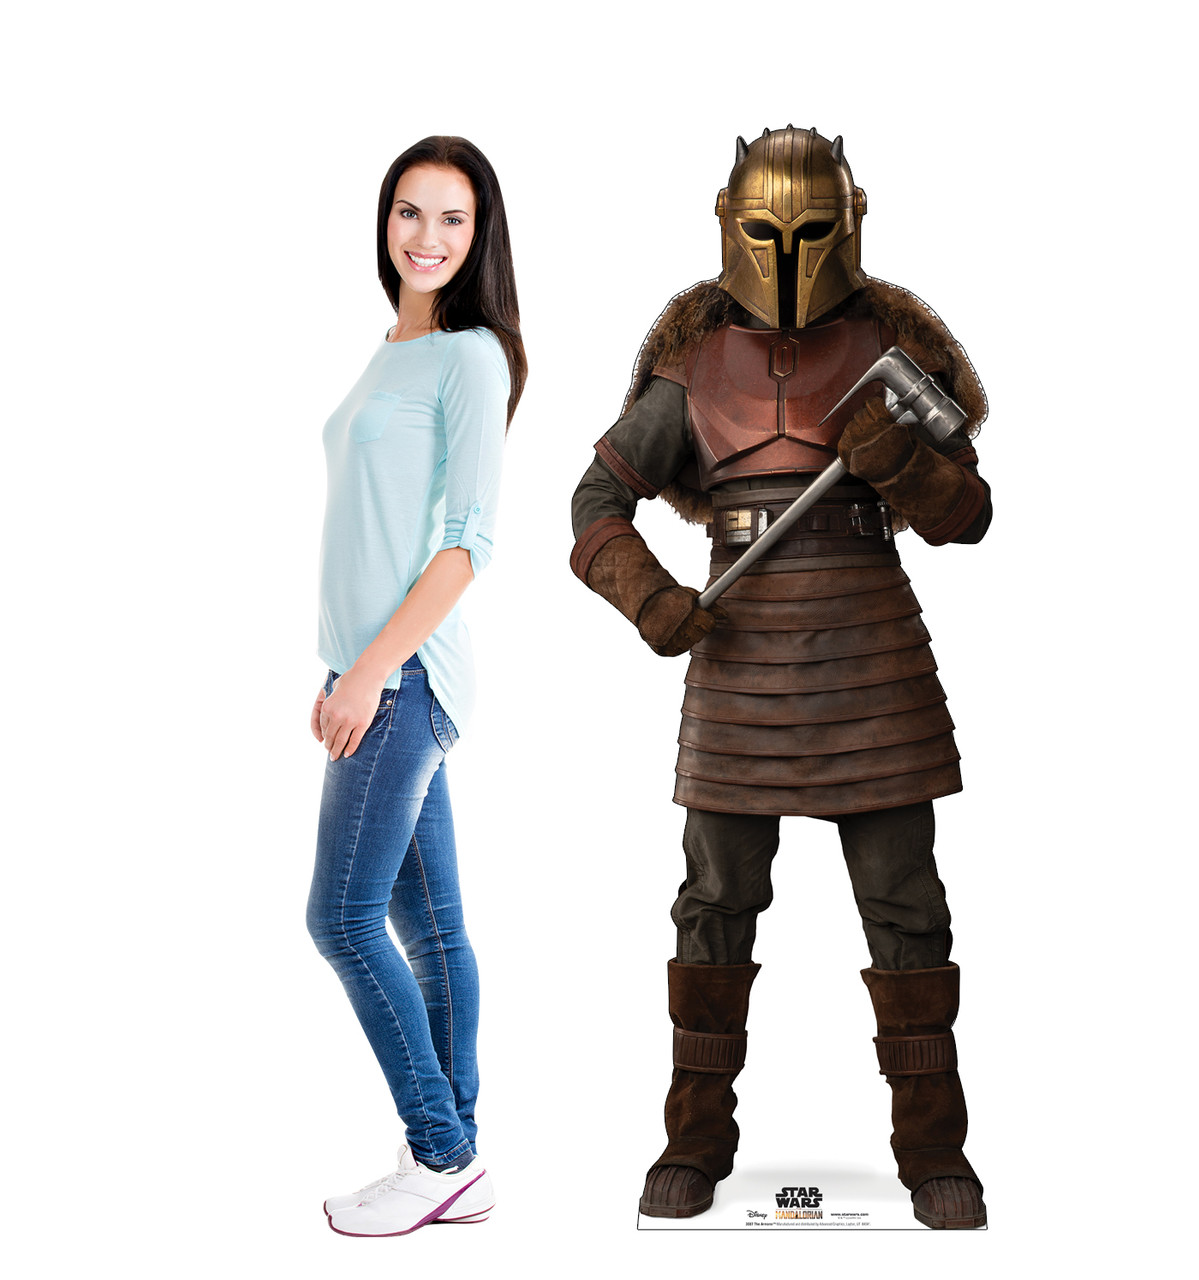 Life-size cardboard standee of The Armorer  from The Mandalorian with model.